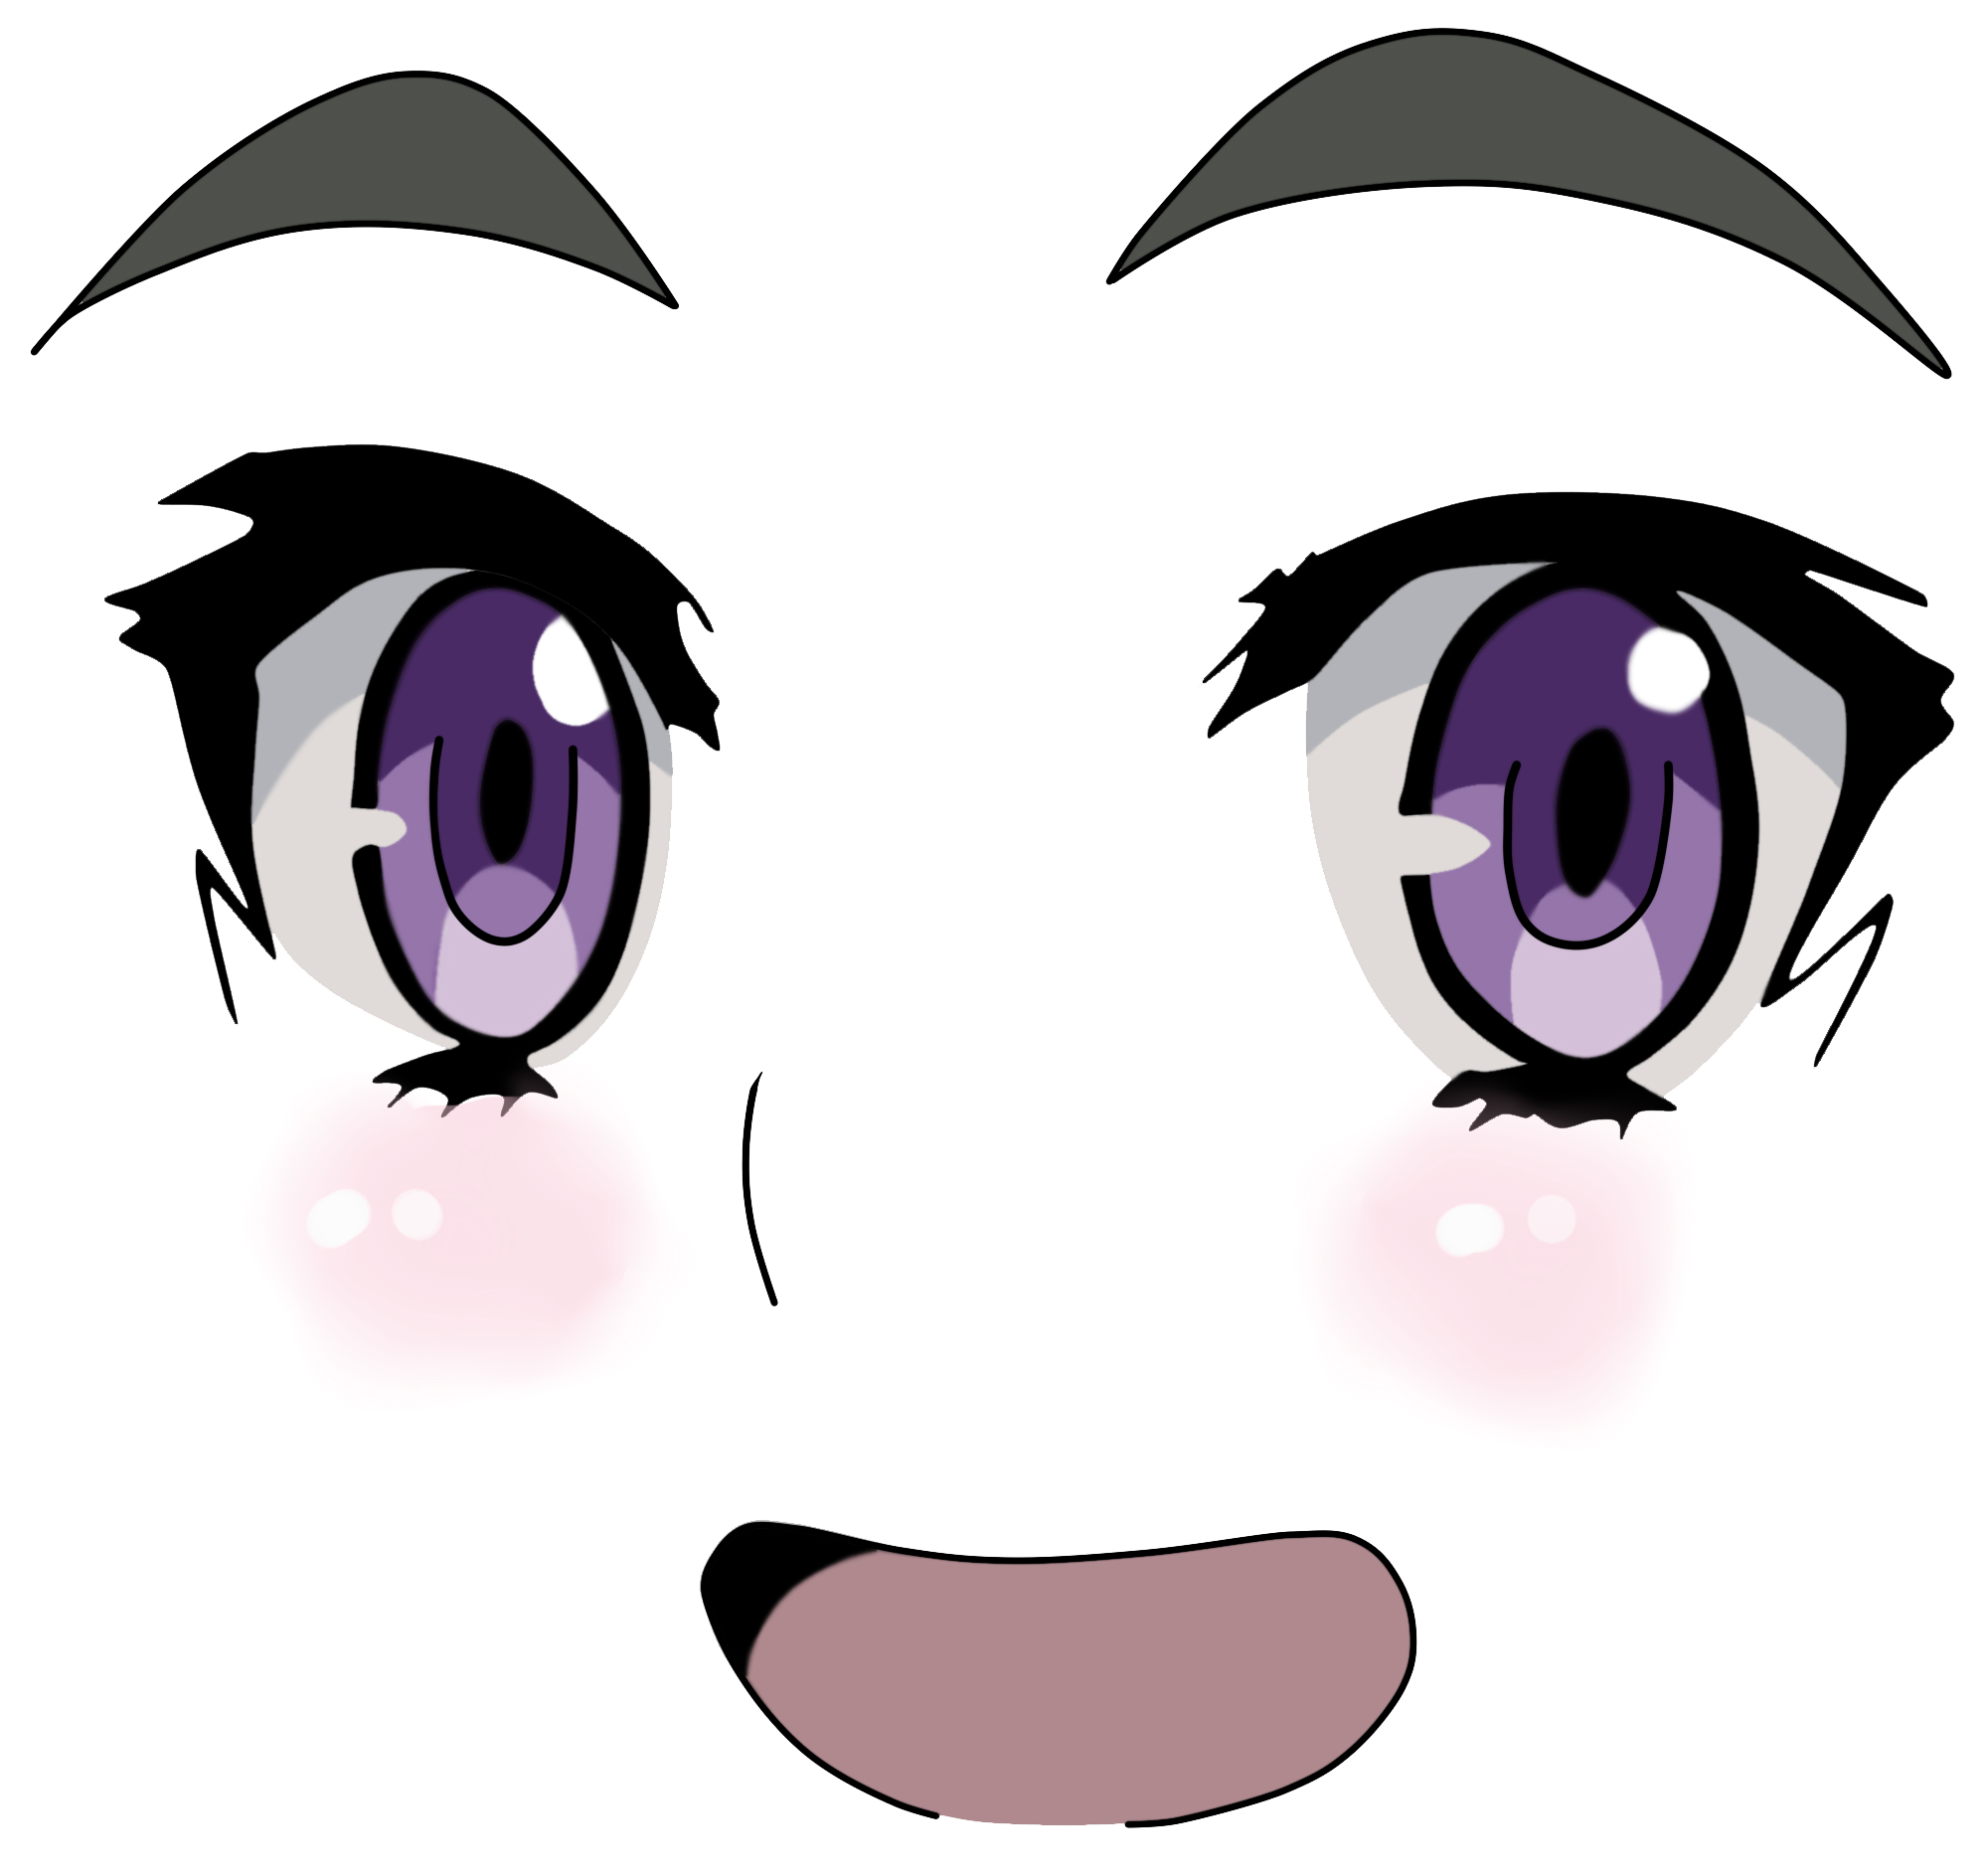 Kawaii anime eyes png. Cute images in collection